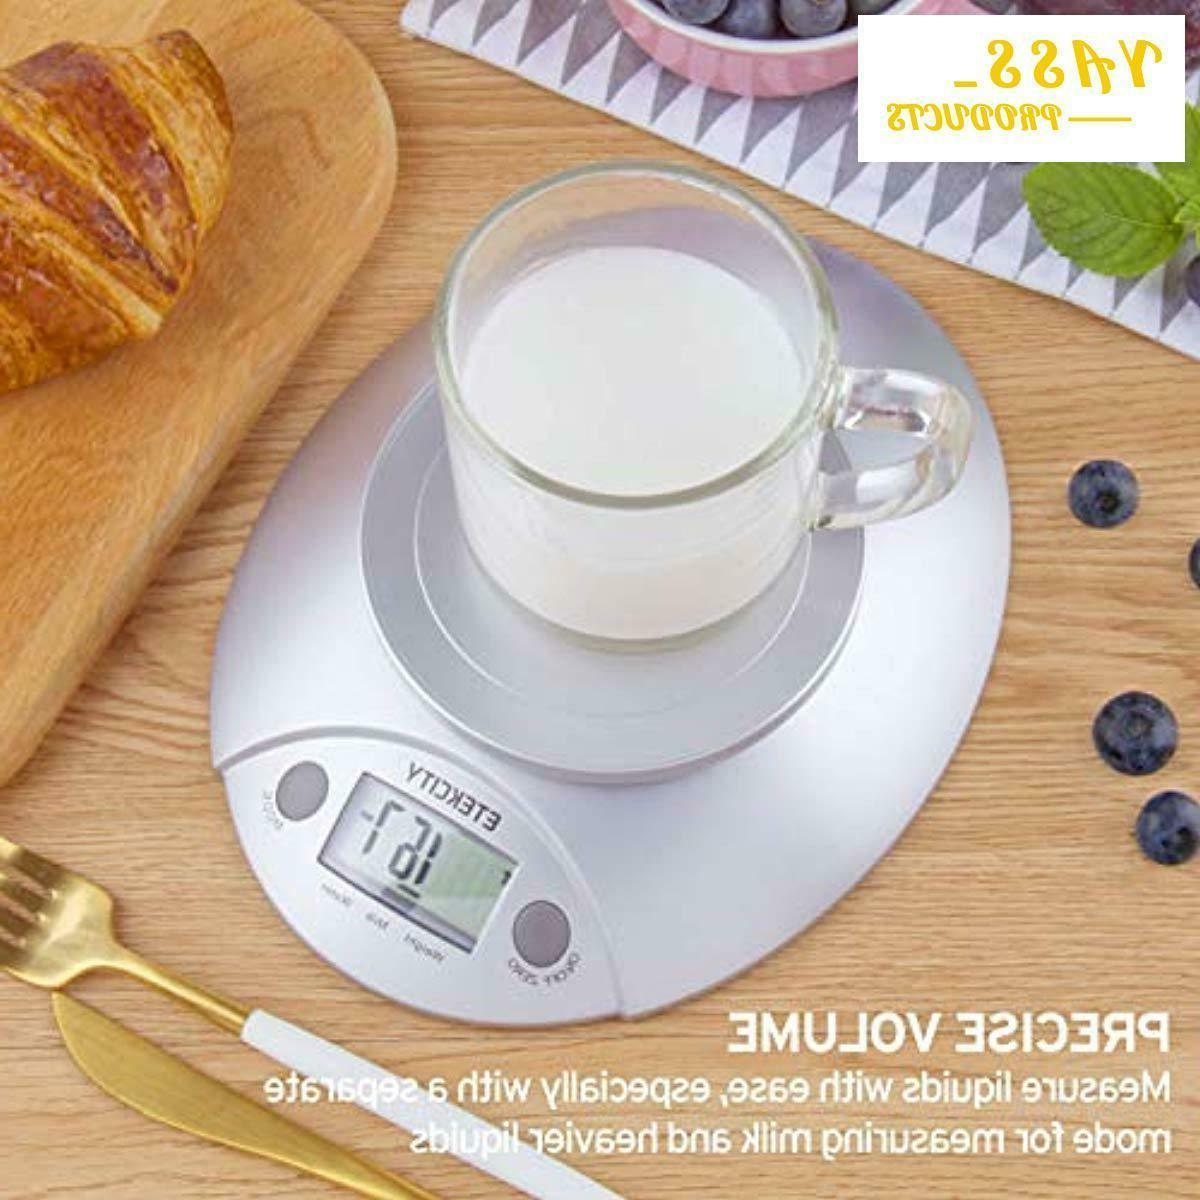 Digital and Weight Scale with